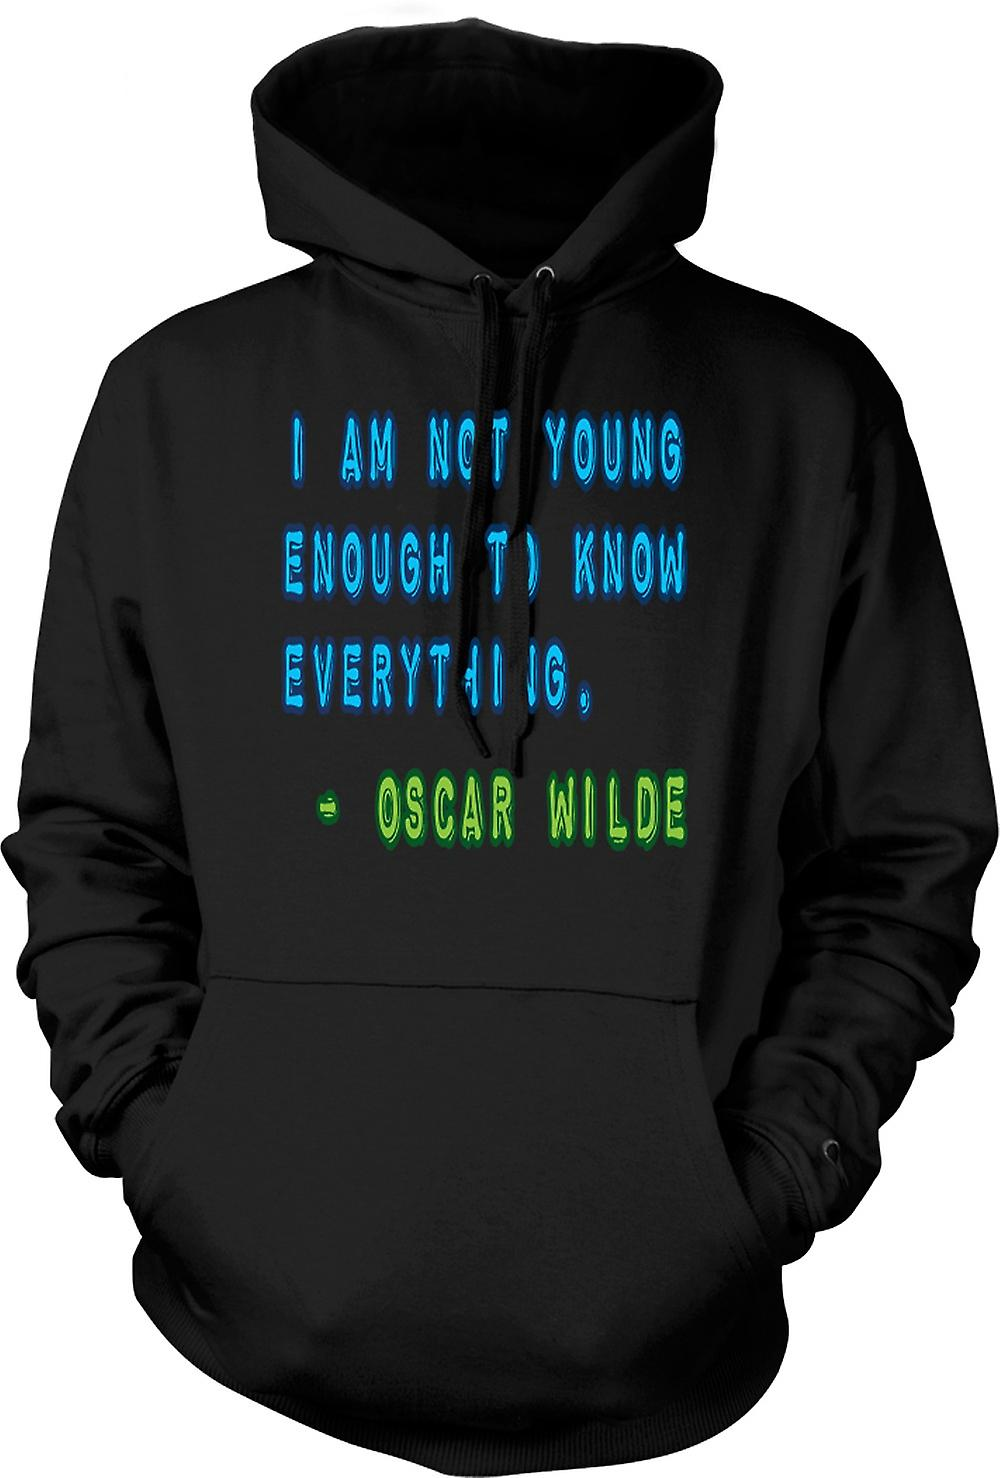 Mens Hoodie - I am not young enough to know eveything-Oscar Wilde